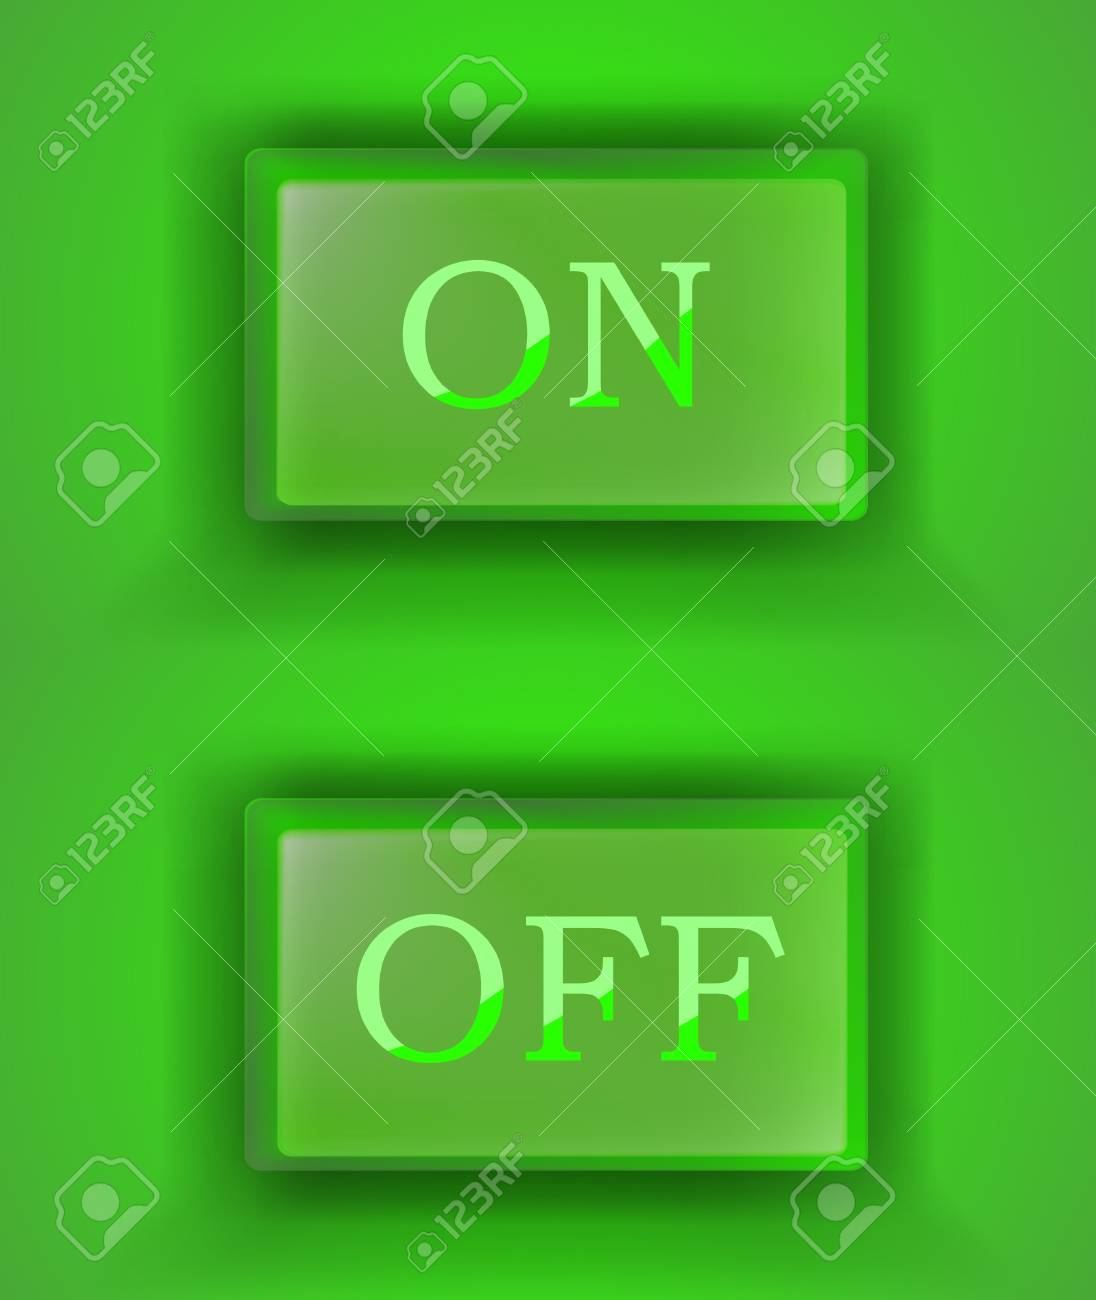 eps10 on off switch Stock Vector - 11761211